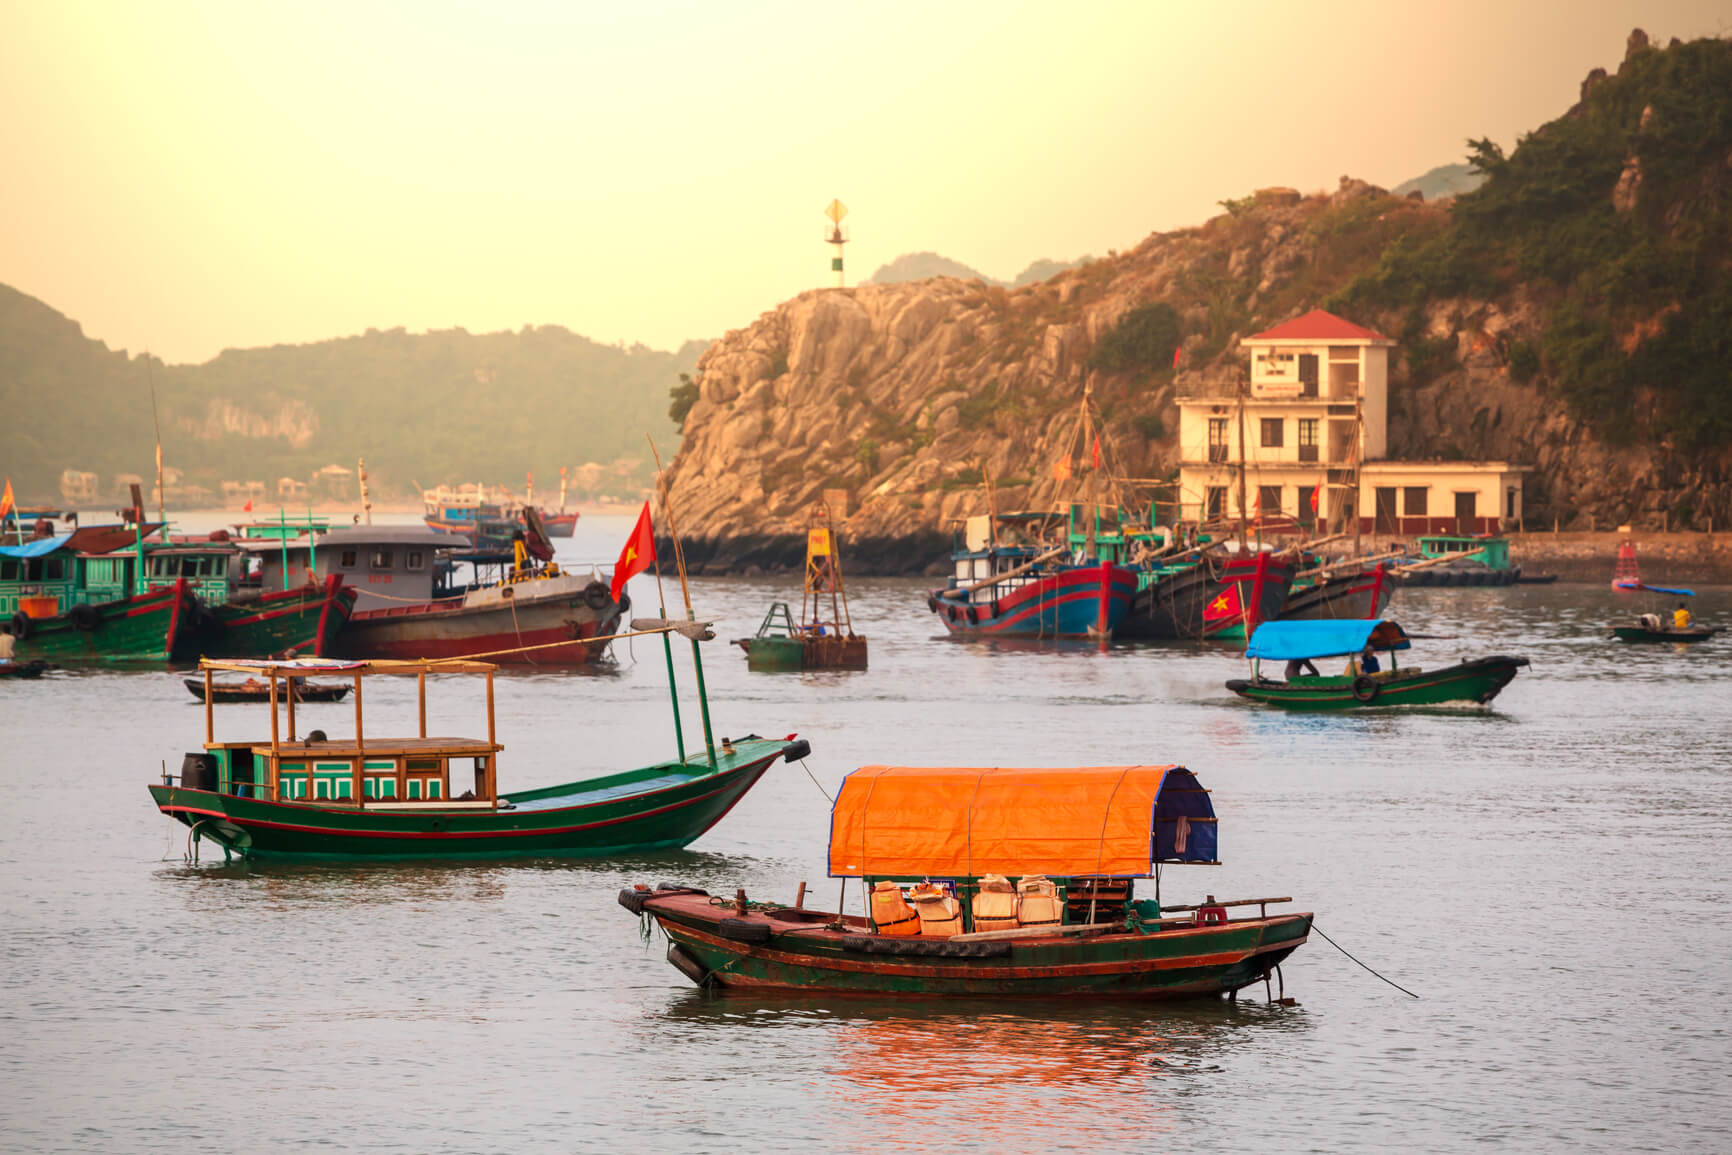 London, UK to Hanoi, Vietnam for only £305 roundtrip